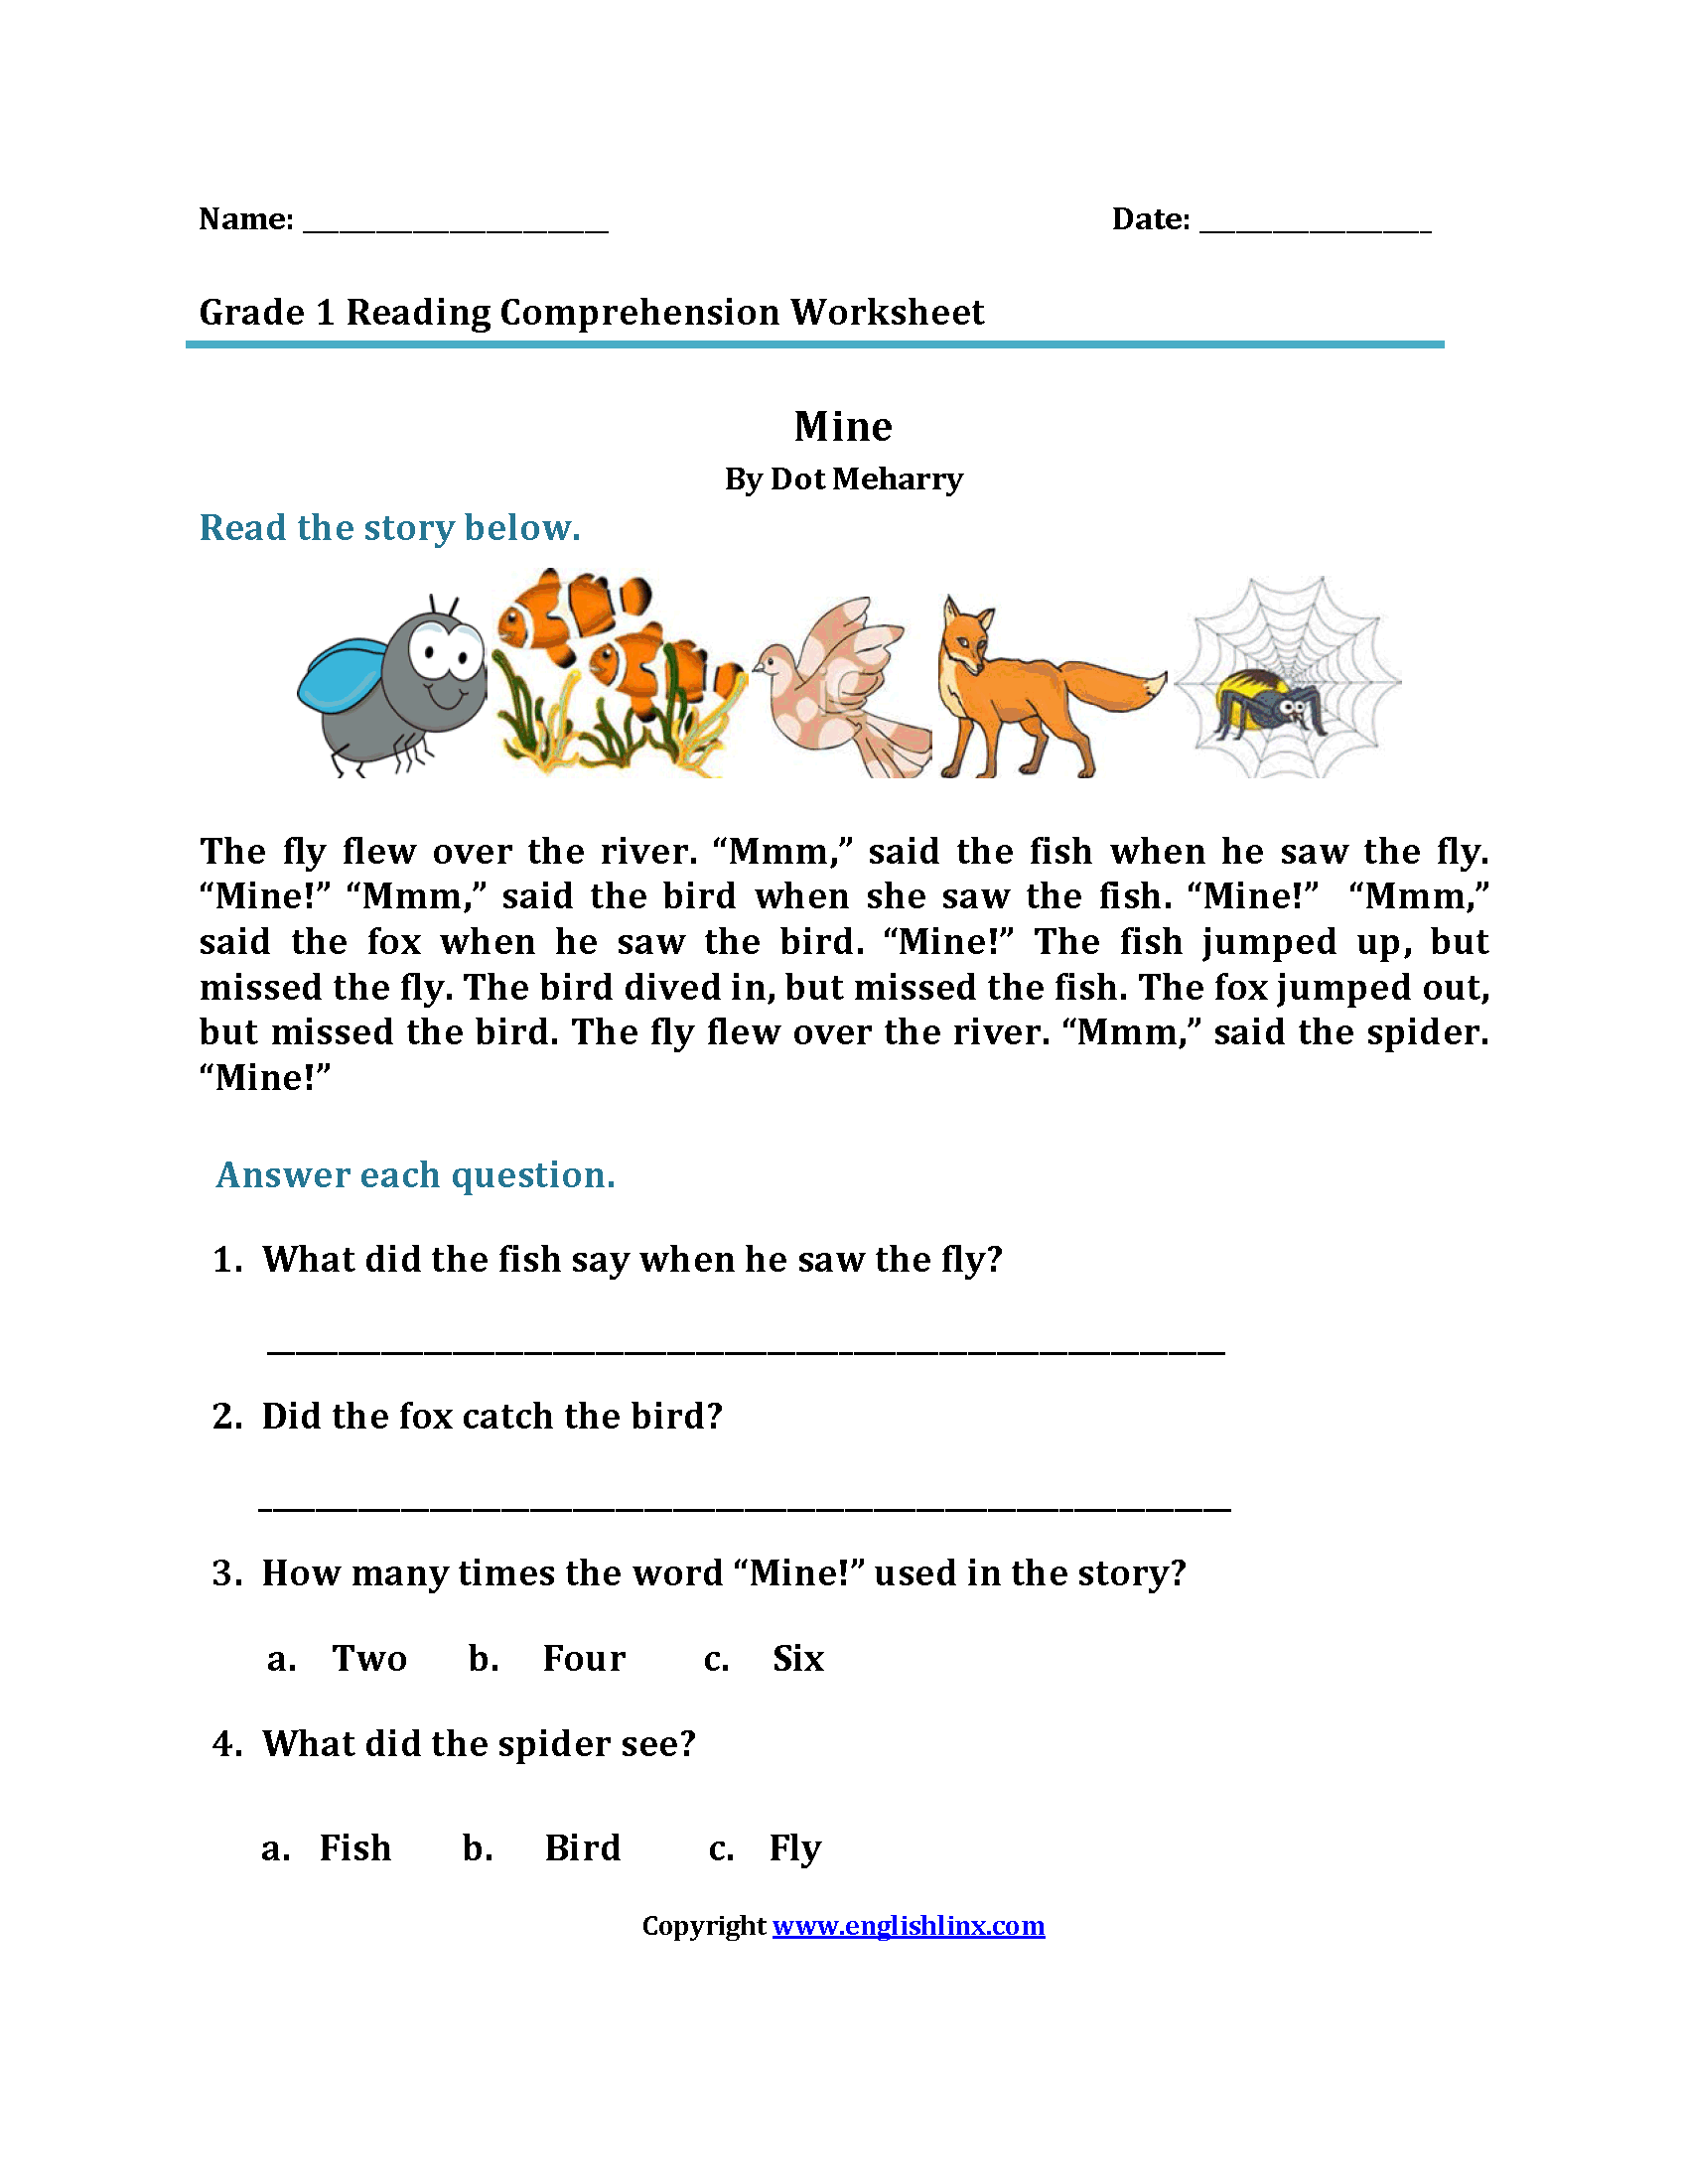 Worksheet Dot Plot Worksheet Grass Fedjp Worksheet Study